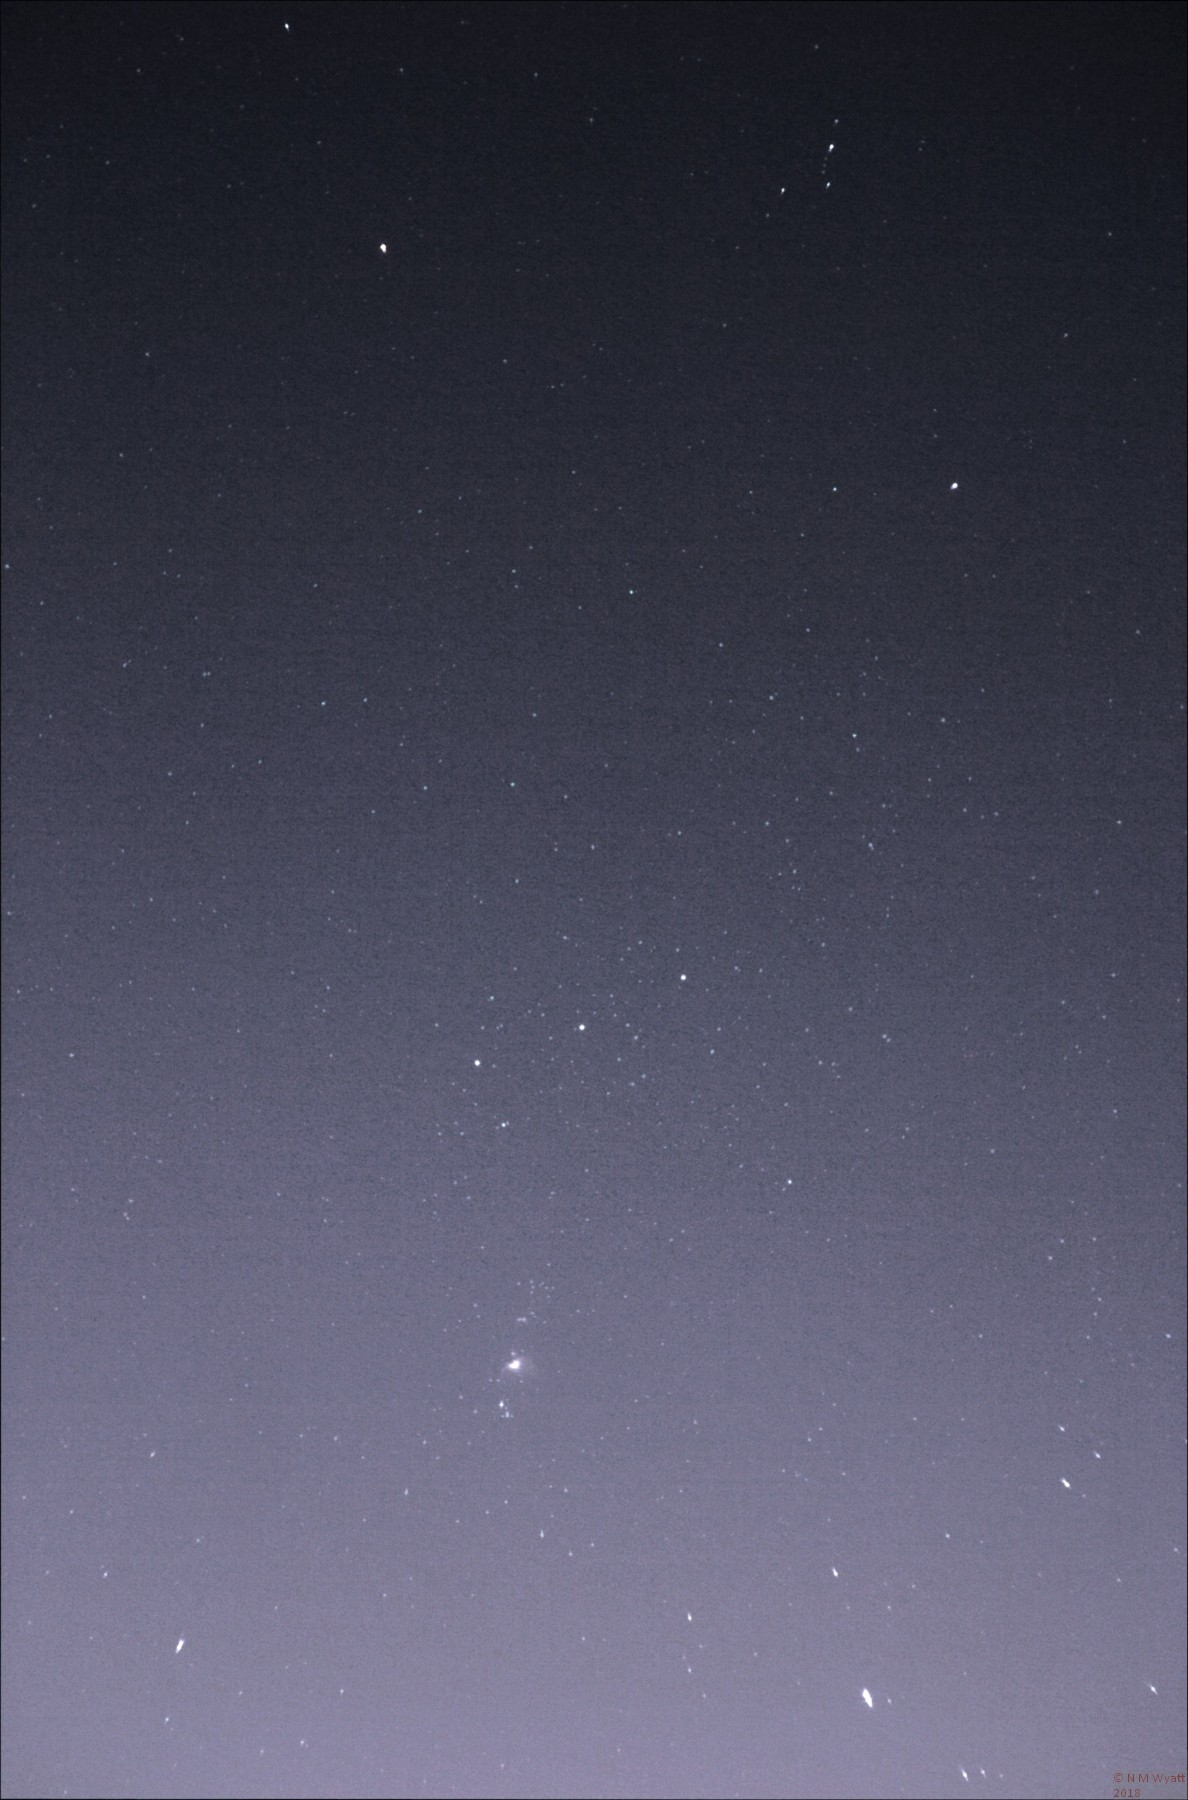 A short exposure image of Orion